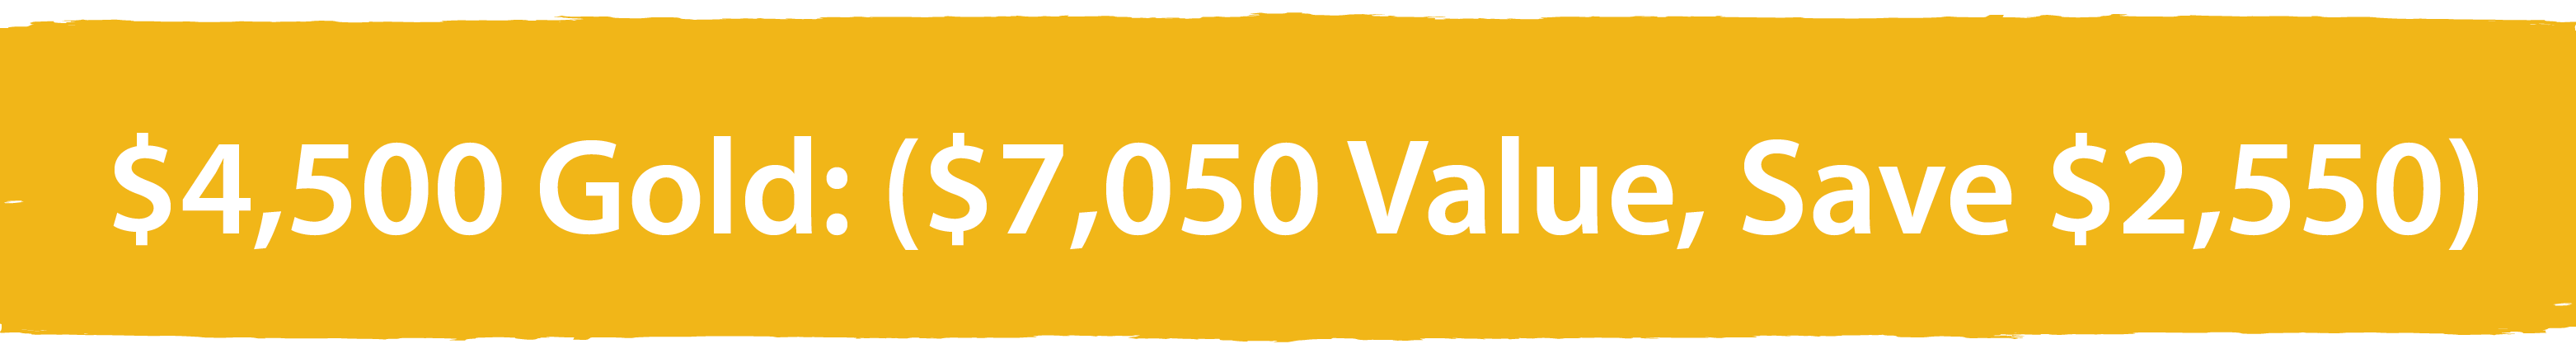 Yellow colored banner: $2,500 Gold: ($3,250 Value)